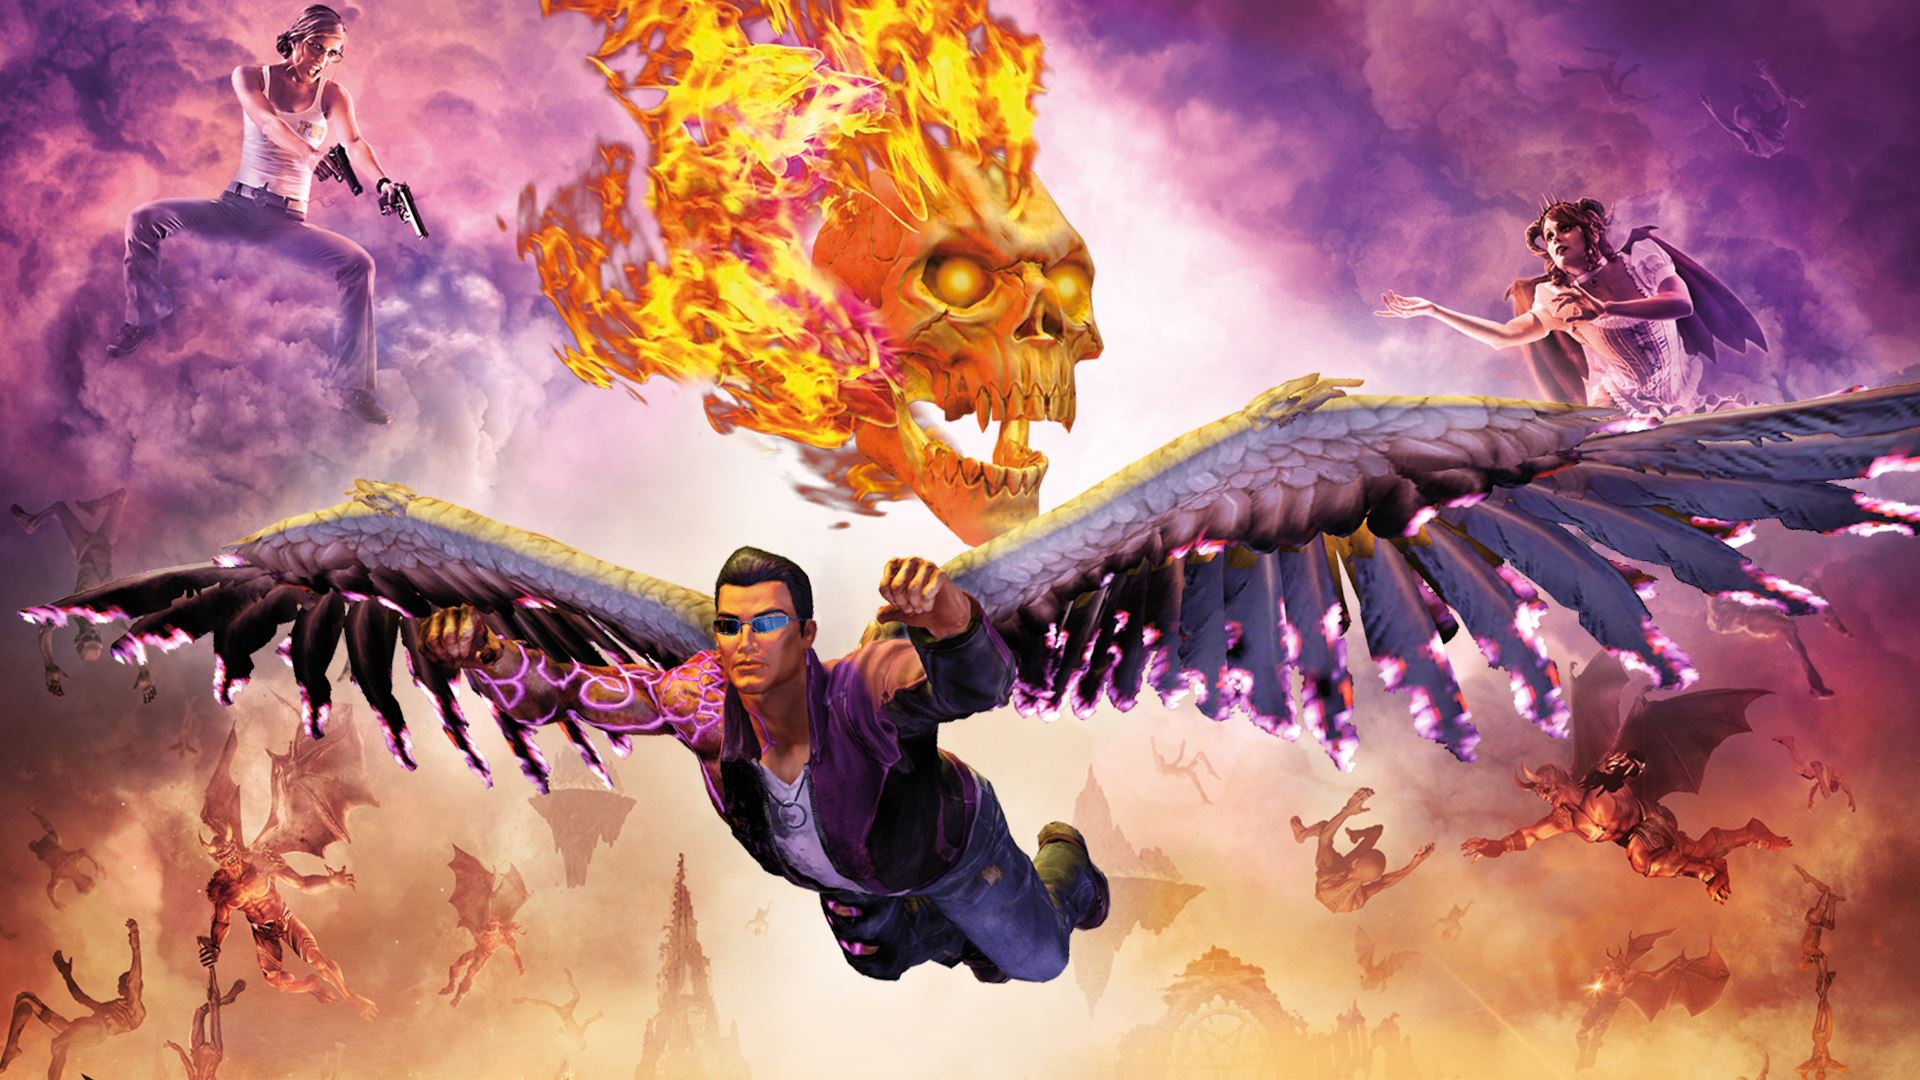 Gat Out Of Hell Hd Wallpaper Saints Row Gat Out Of Hell Devil S